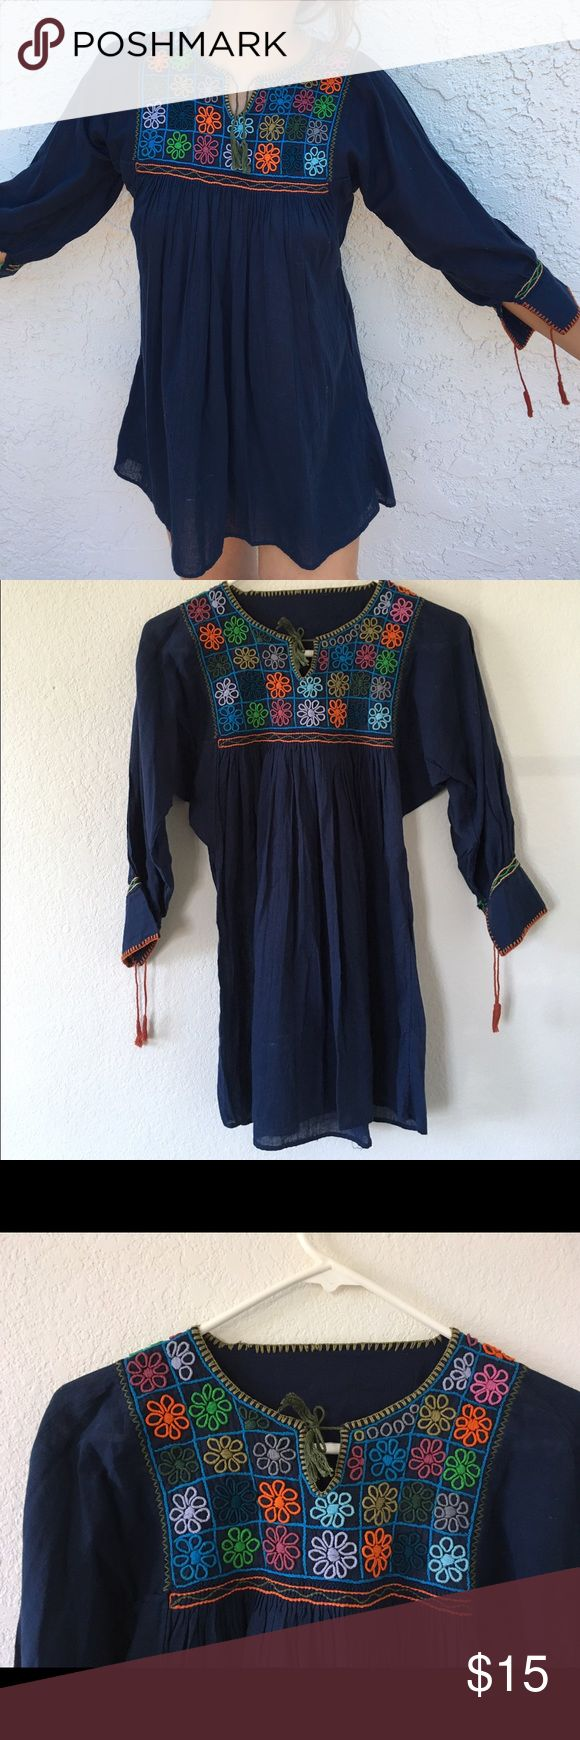 New!! Hand embroidered Mexican shirt! New! Never worn except to take this photo to show how it looks on. Very flattering. Colorful. Bought it in an outdoors market in Mexico. Selling it because I have many shirts like it. Tops Blouses